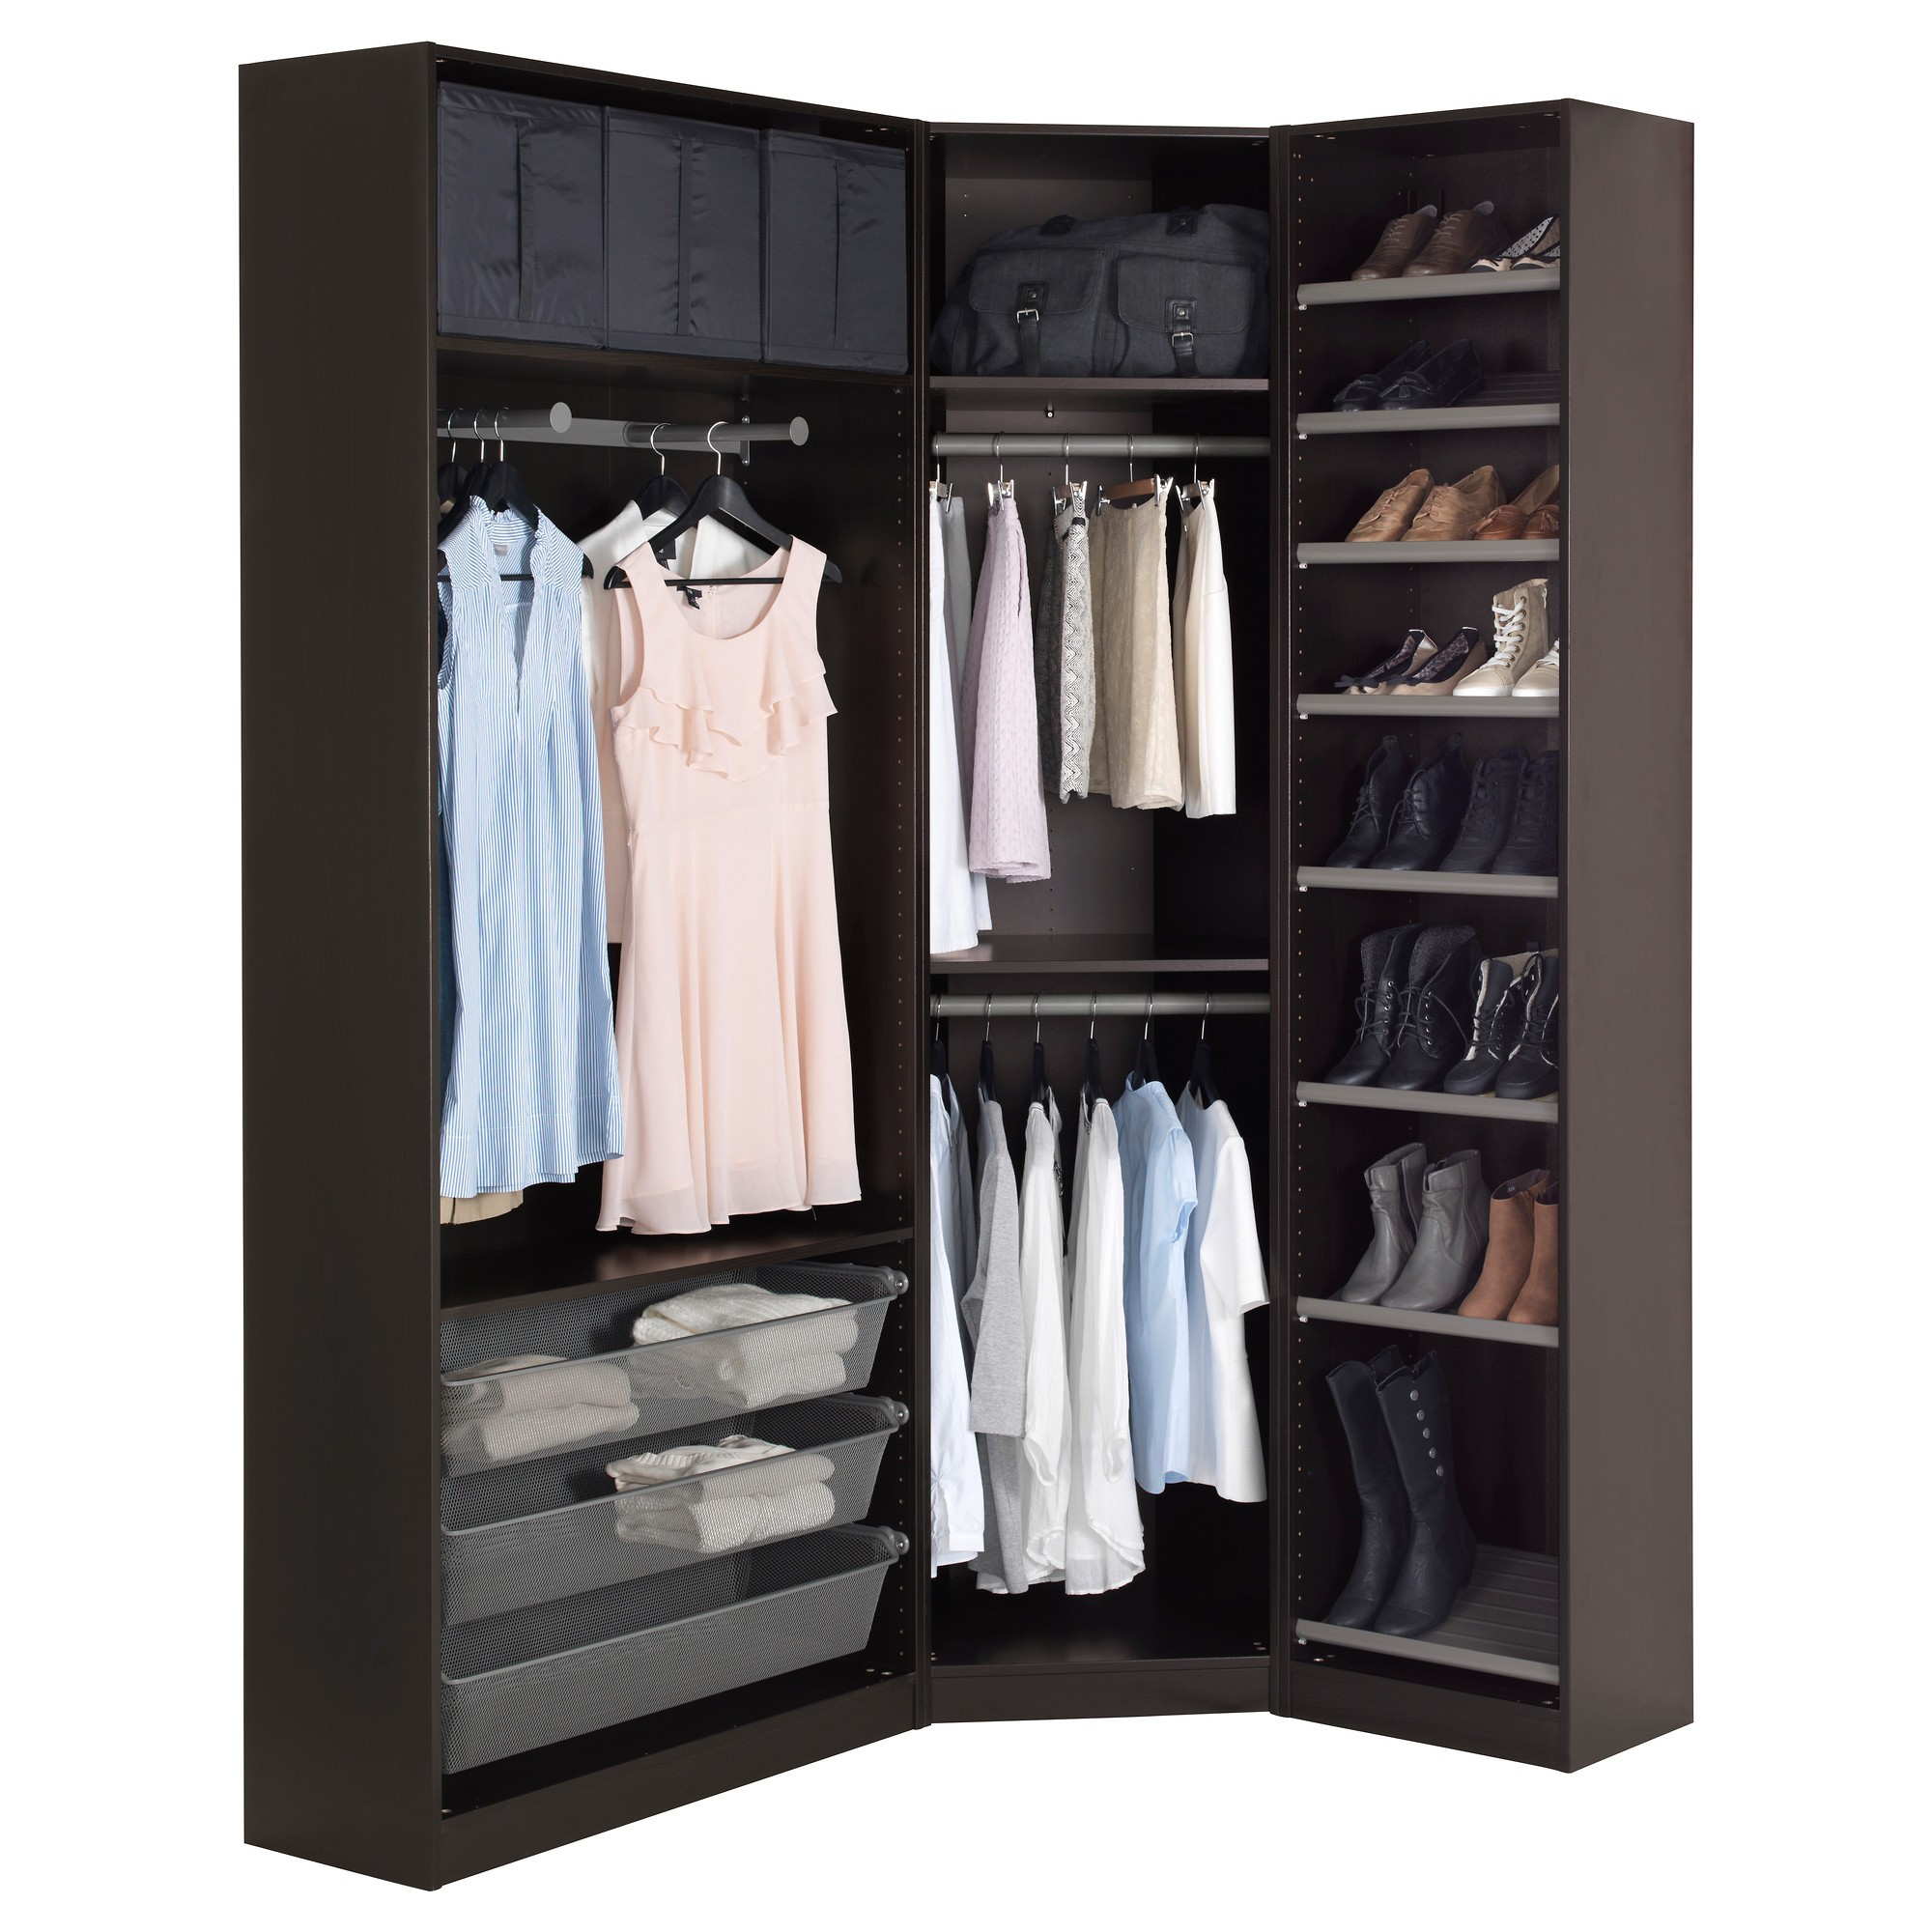 armoire jardin leroy merlin ides 28 images comment poser un bloc porte leroy merlin youtube. Black Bedroom Furniture Sets. Home Design Ideas